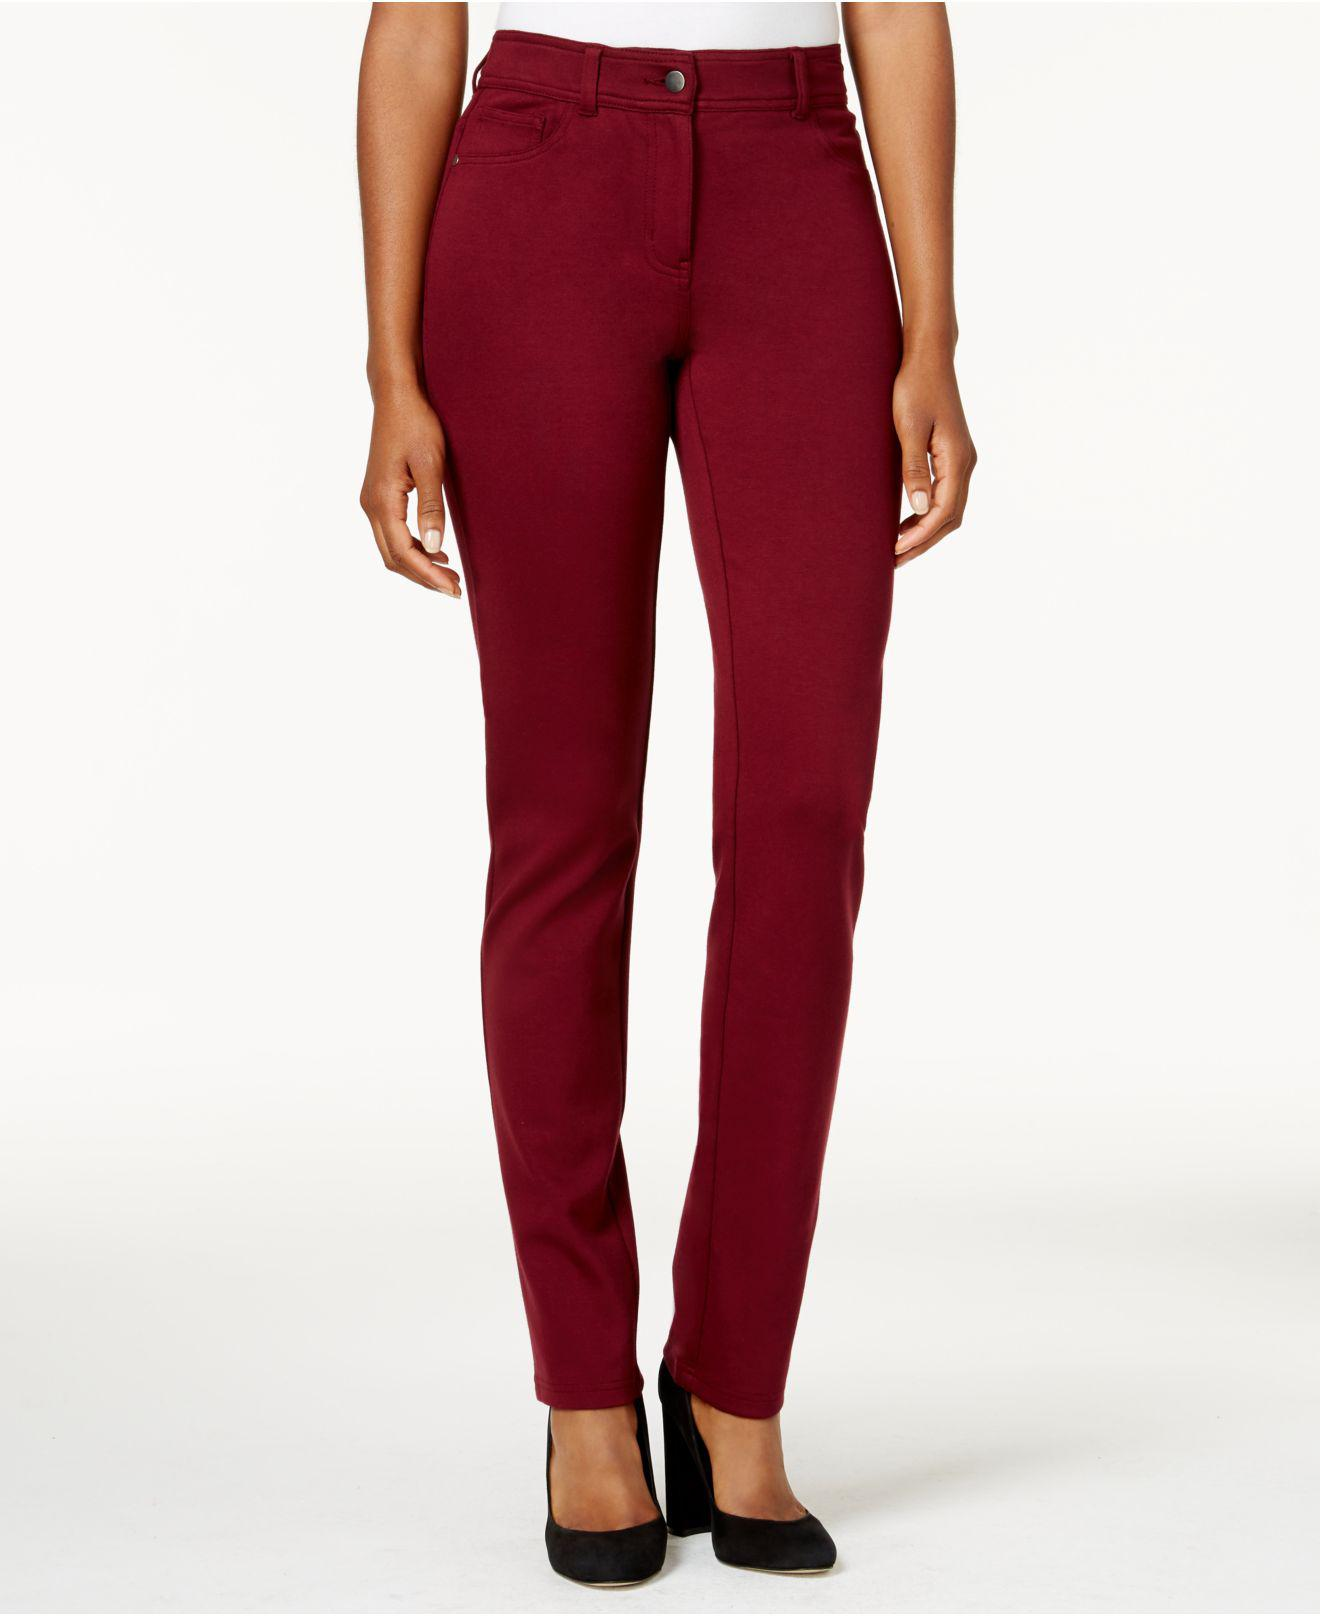 907ebe07091f44 Style /& Co........ Petite Curvy Skinny Jeggings Pants in Deep Scarlet  Holiday presents